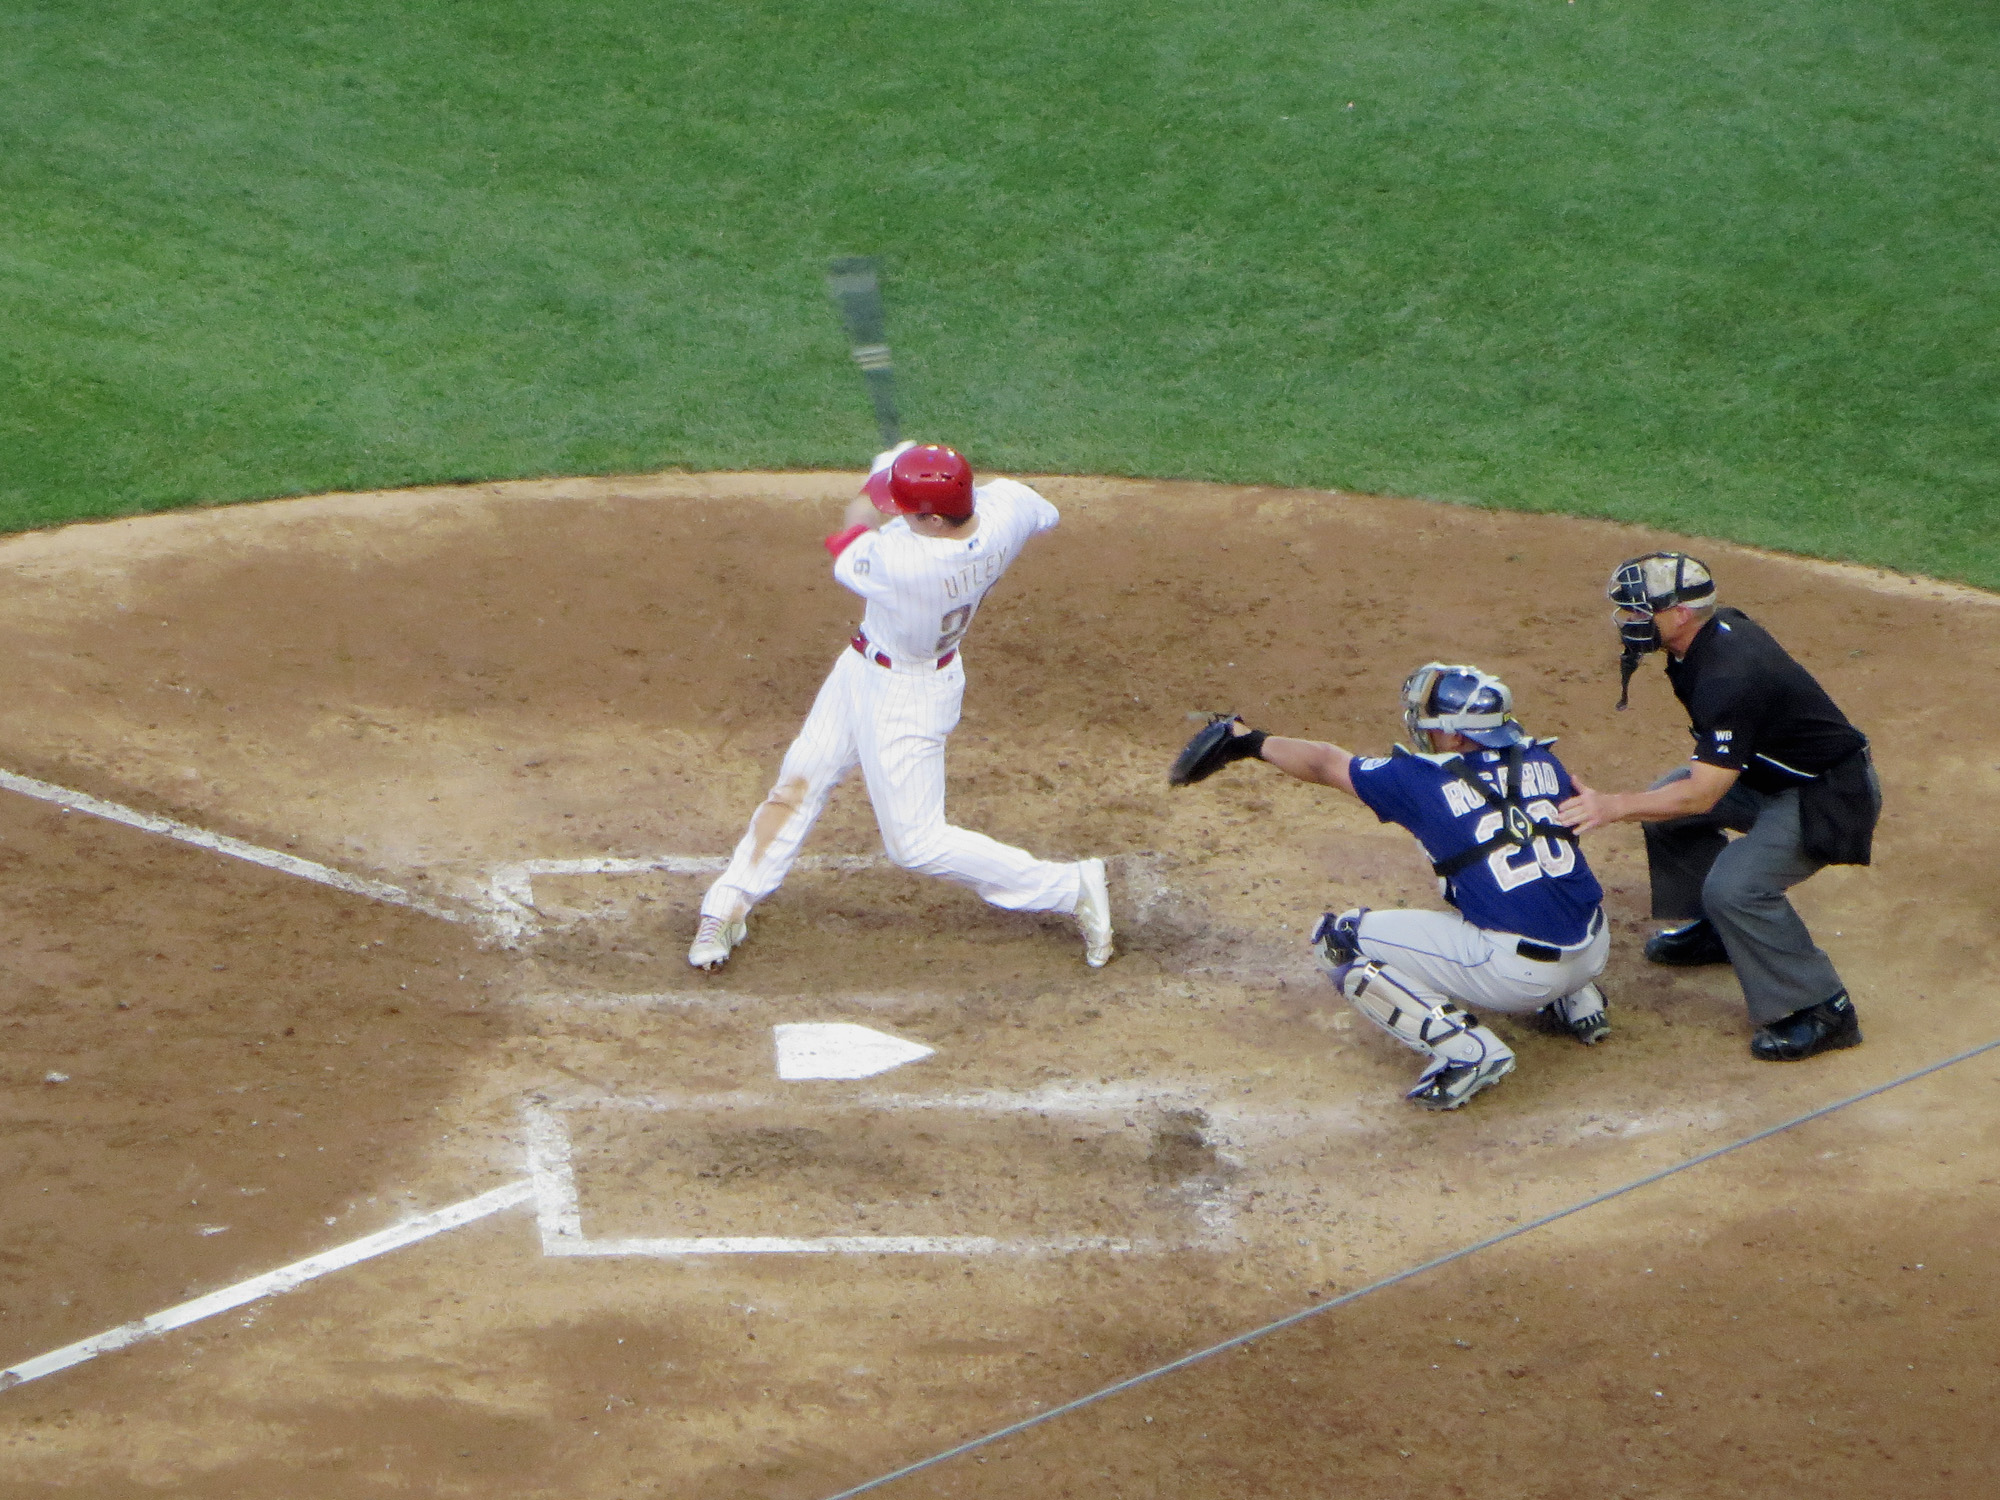 Citizens bank park cook sons baseball adventures and on that swing the ball is long gone from the frame so youll have to take my word for it utley smacked an rbi double to rf off of our pre game ccuart Images